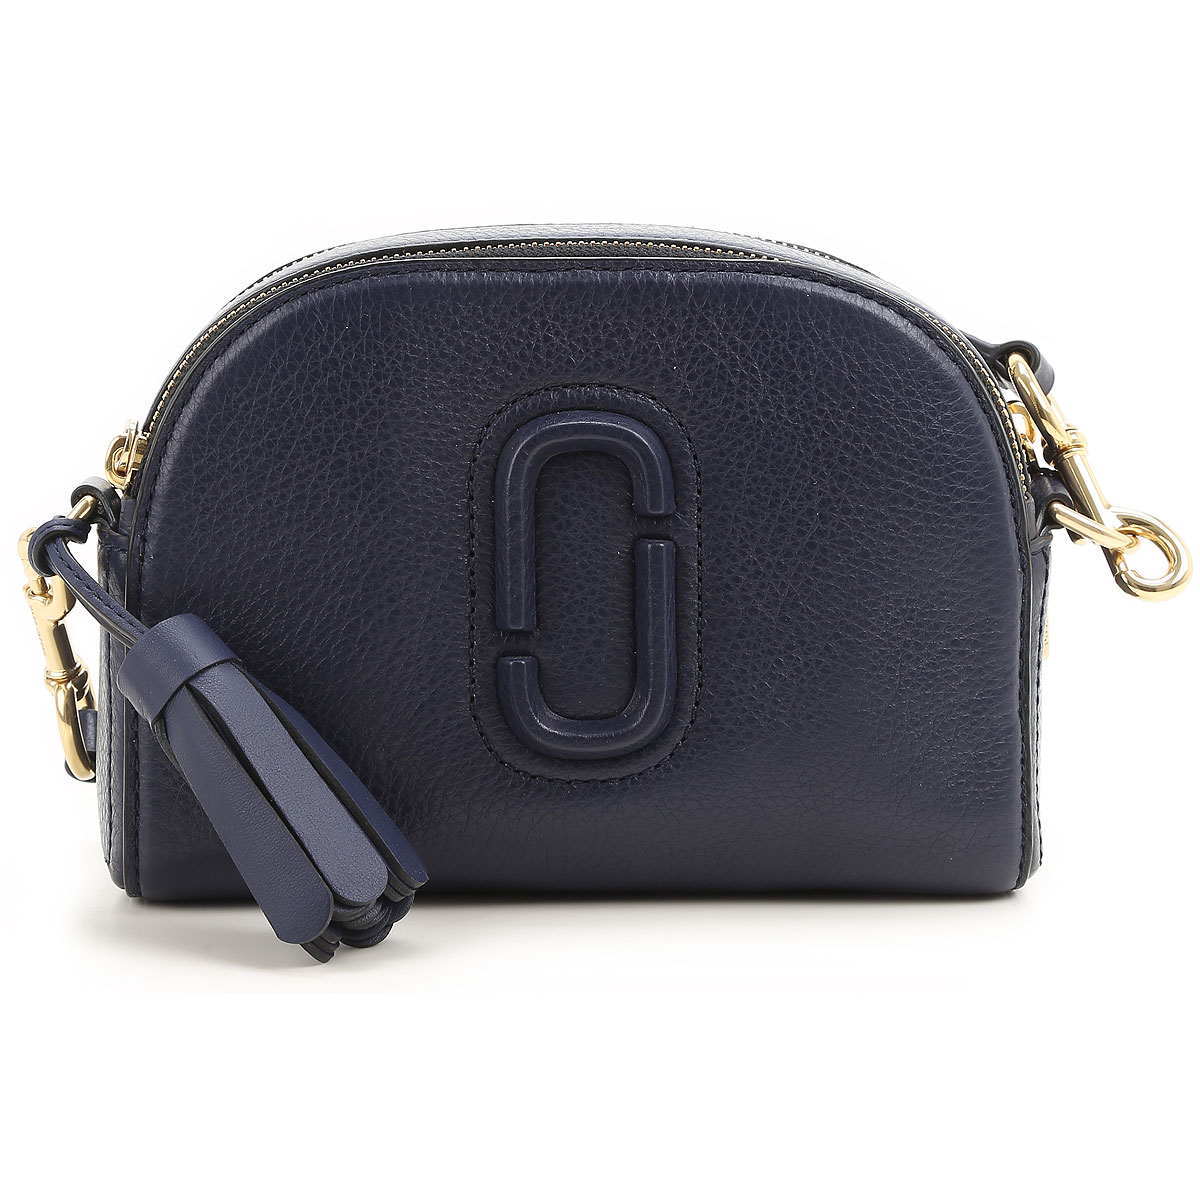 Marc Jacobs Shoulder Bag for Women, Midnight Blue, Leather, 2017 USA-383866